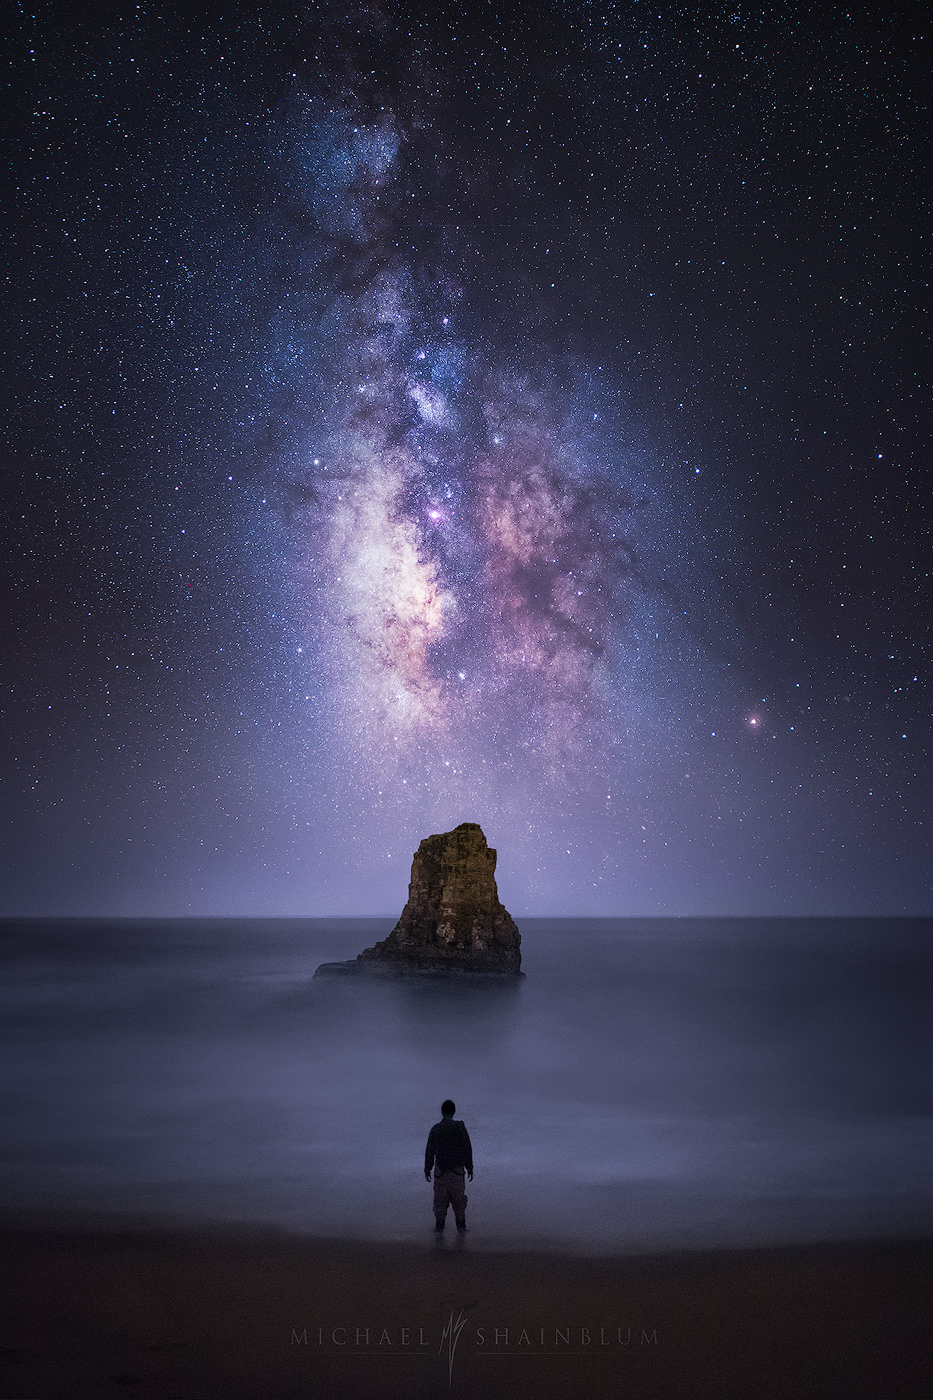 California Milky Way Photography Night Sky and Astrophotography